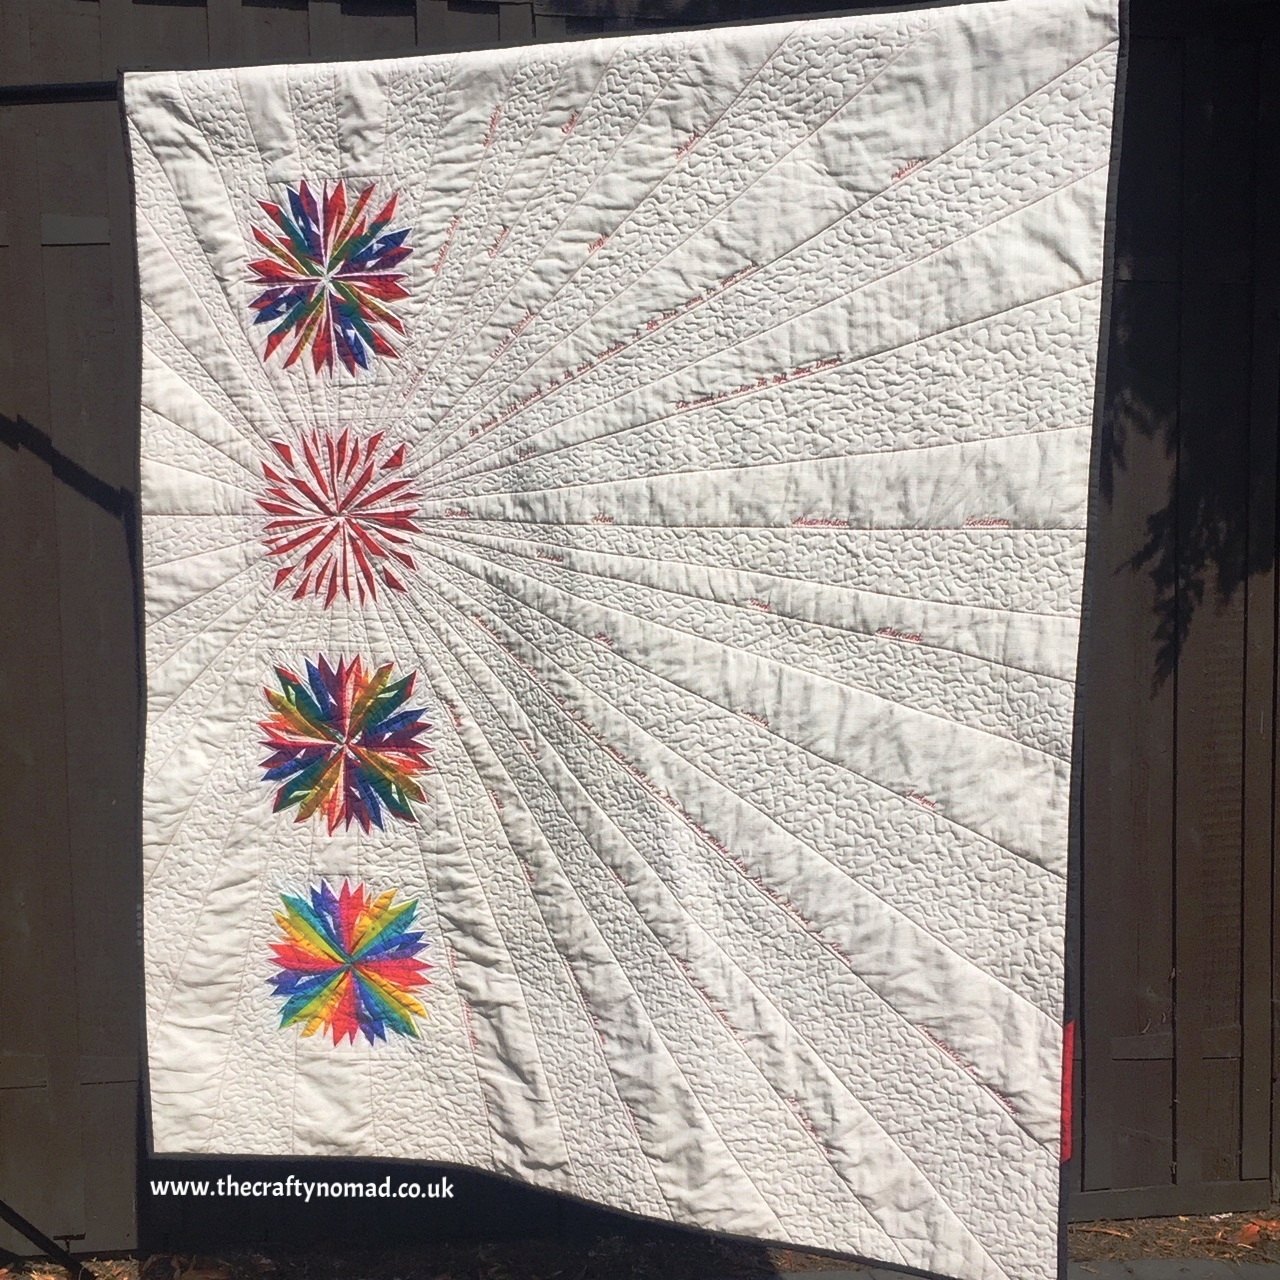 The Crafty Nomad - Jo Westfoot - Breaking Point - Let's Talk Quilt